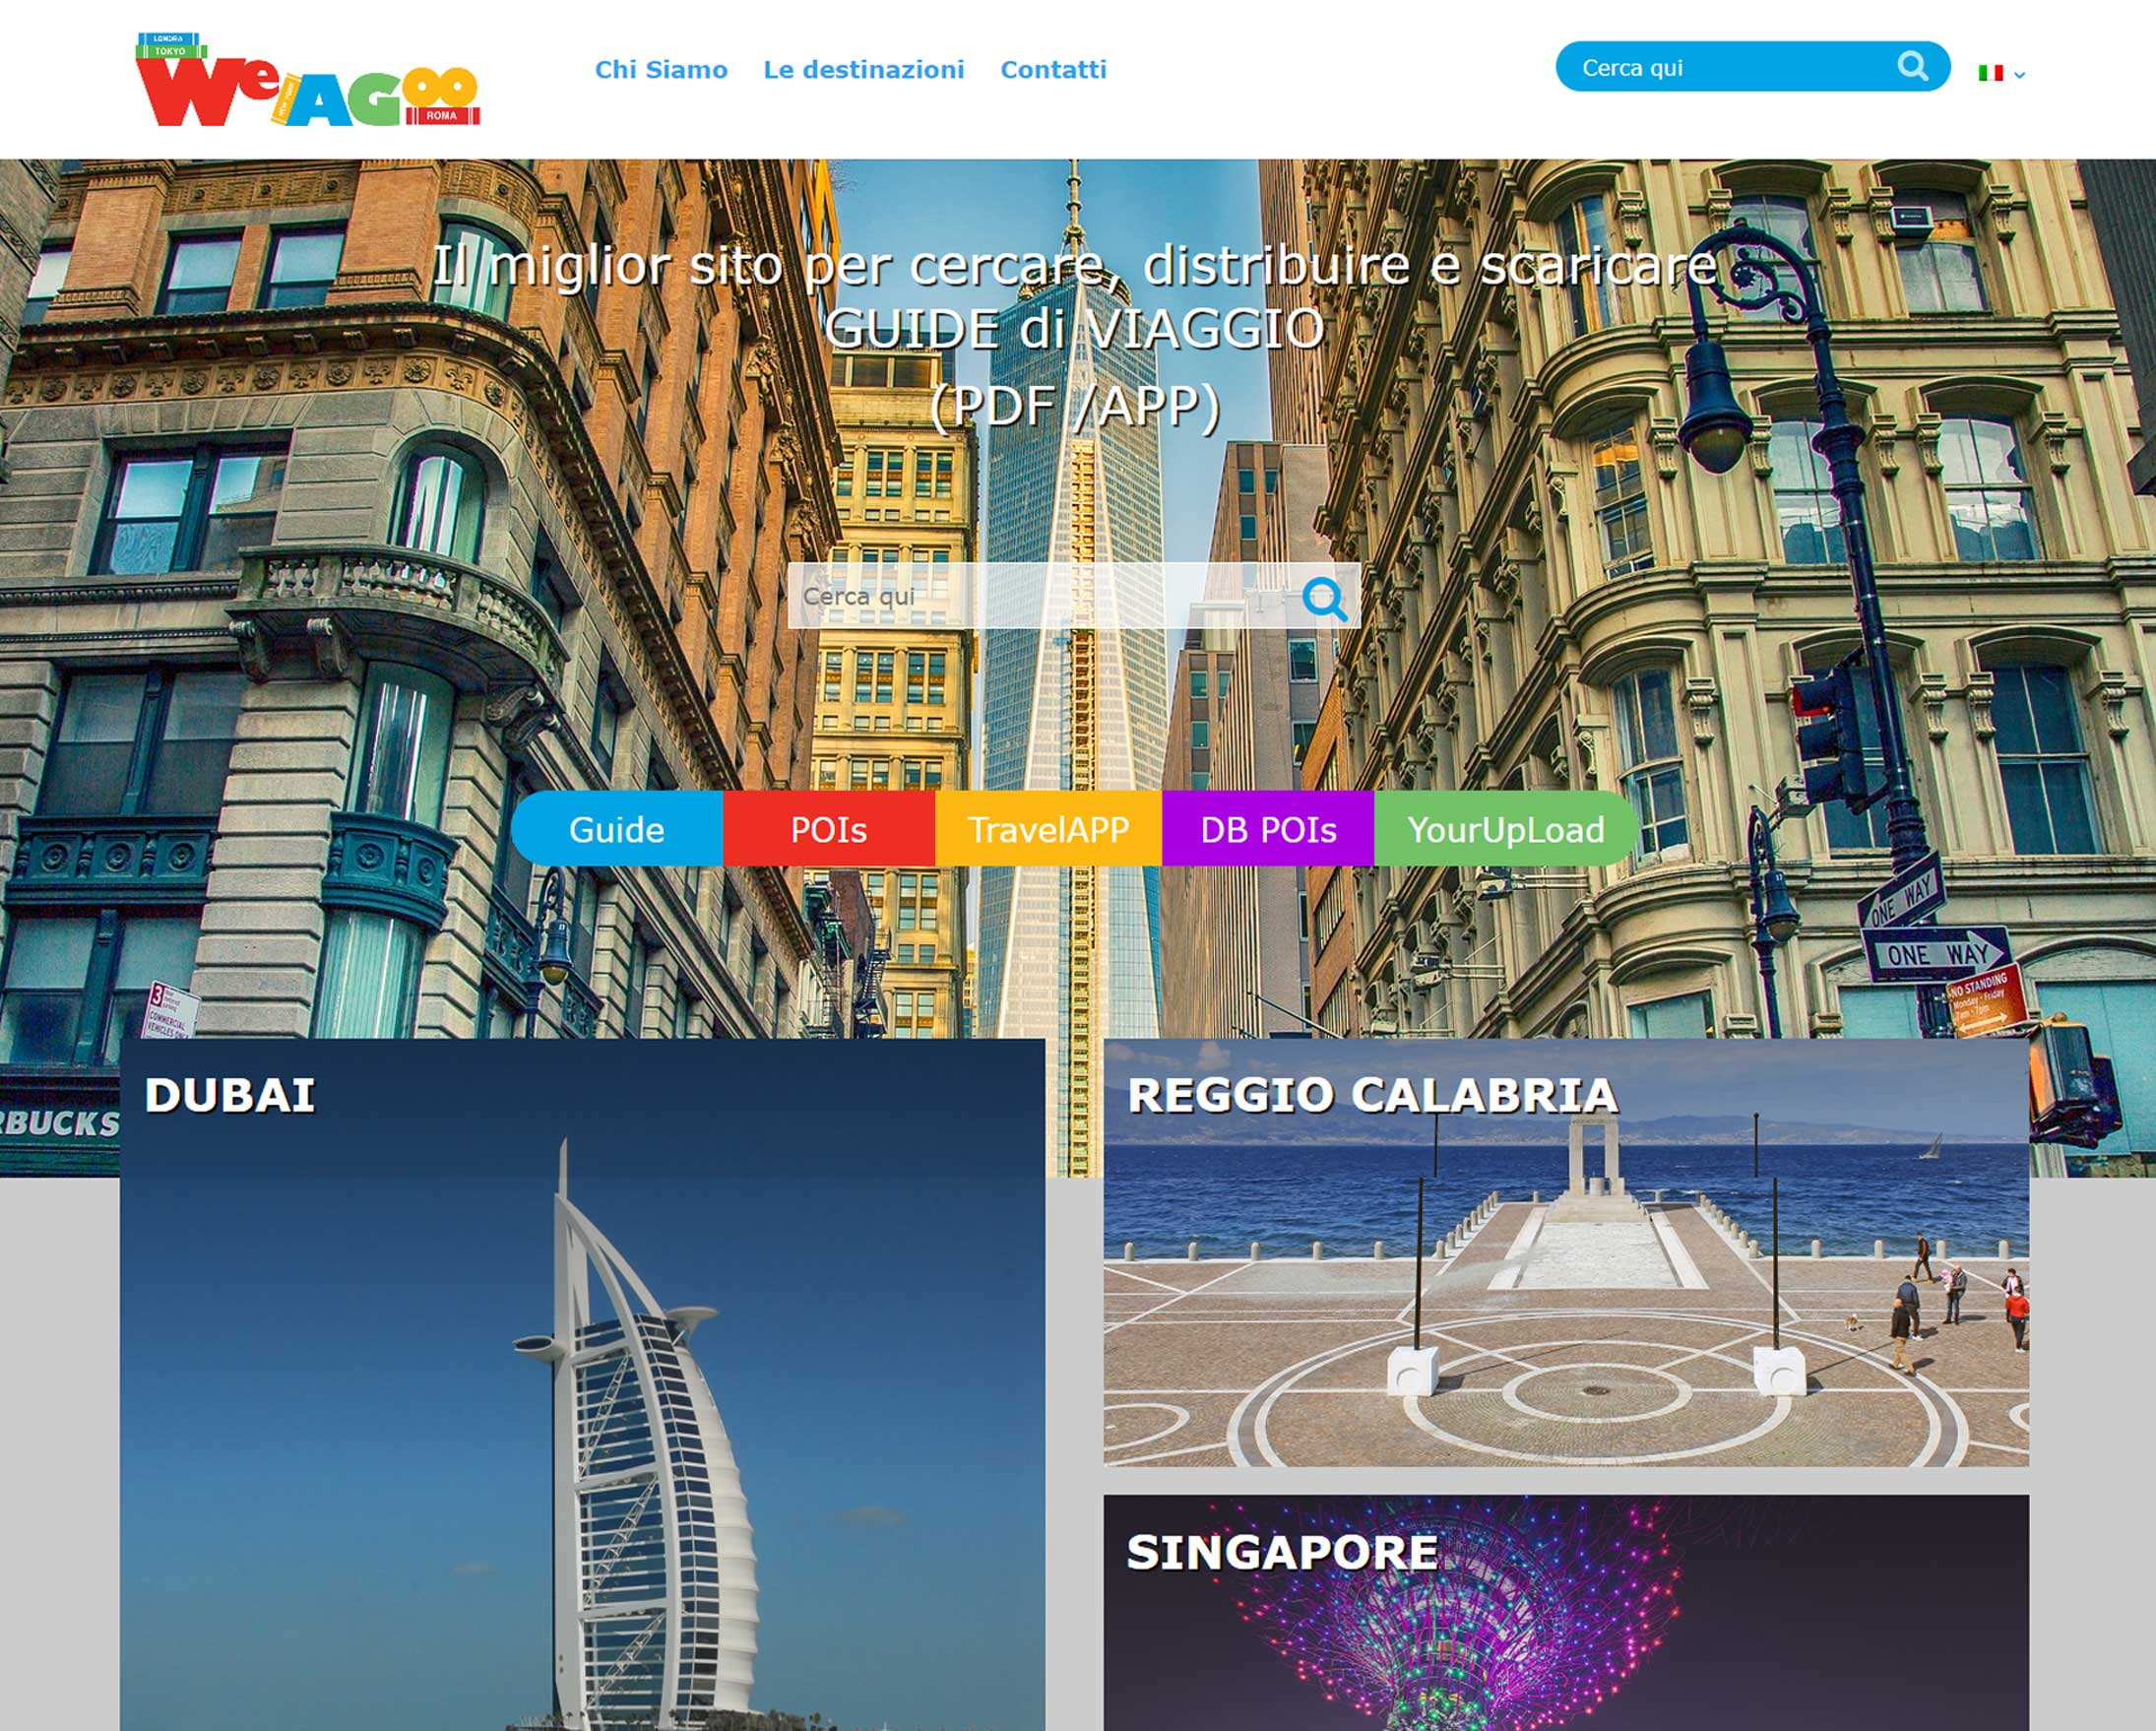 Manet is partner with WeAGoo for tourist content and guides